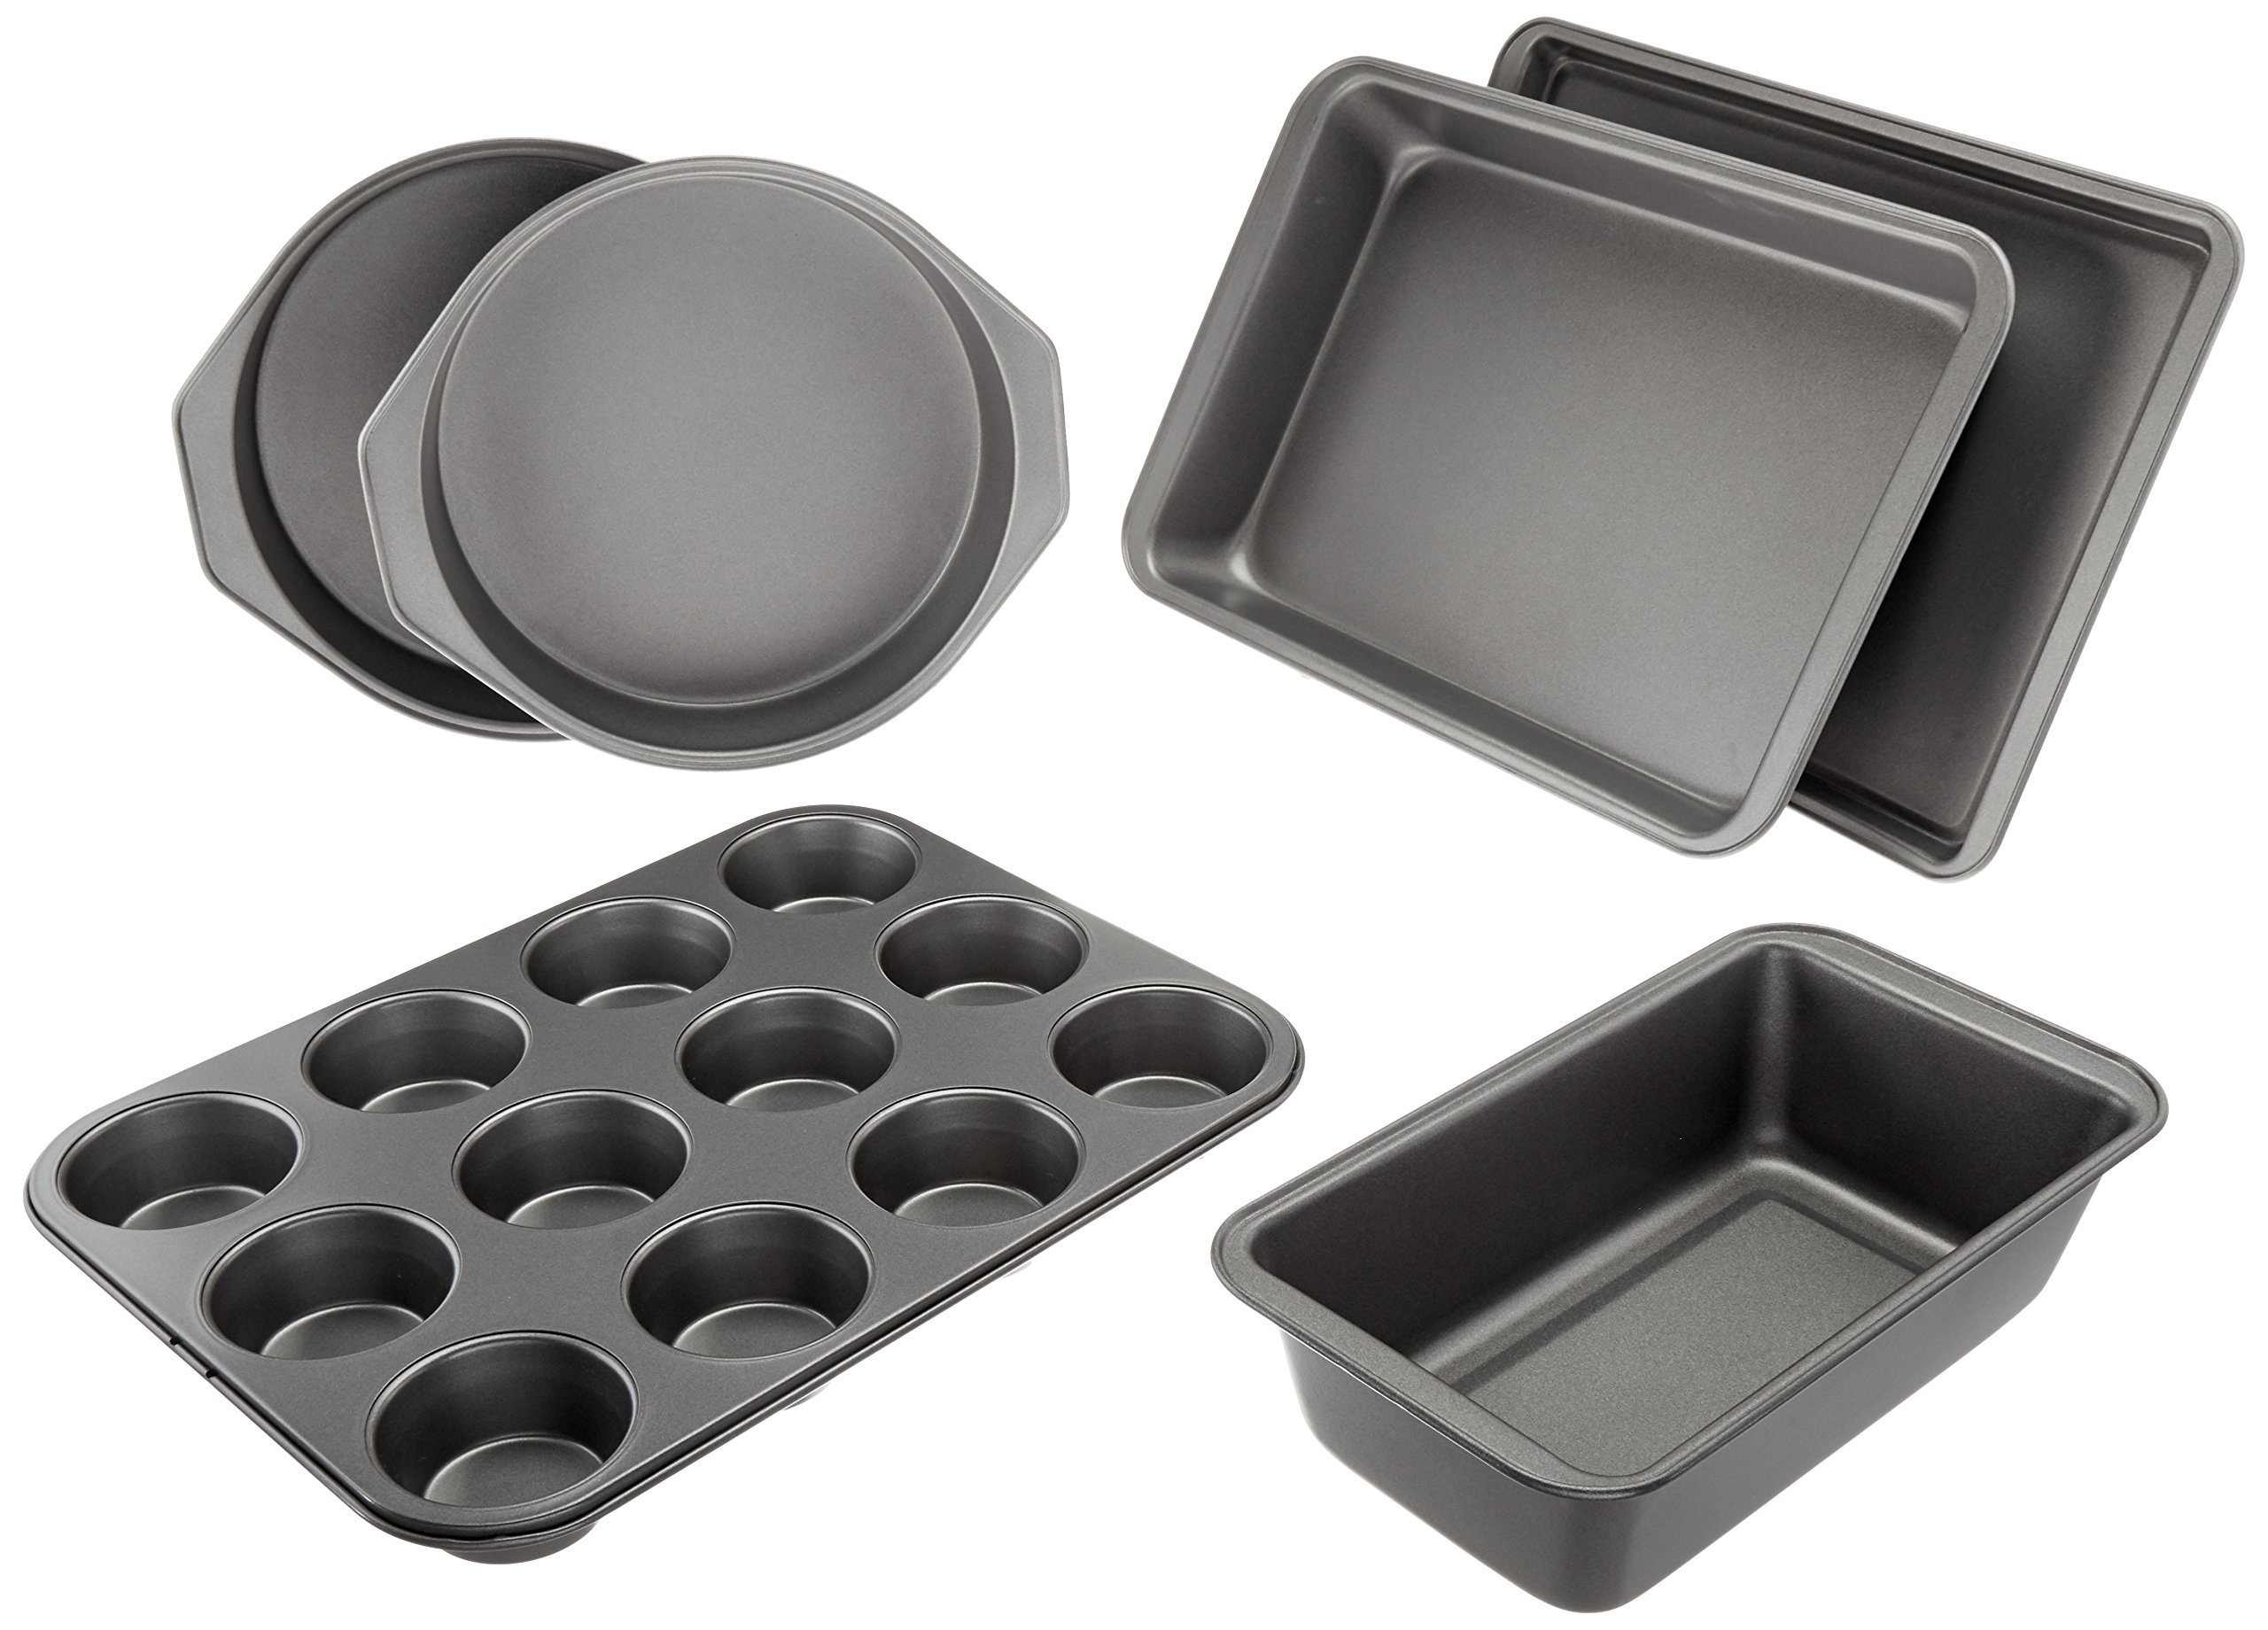 AmazonBasics 6-Piece Nonstick Oven Bakeware Baking Set by AmazonBasics